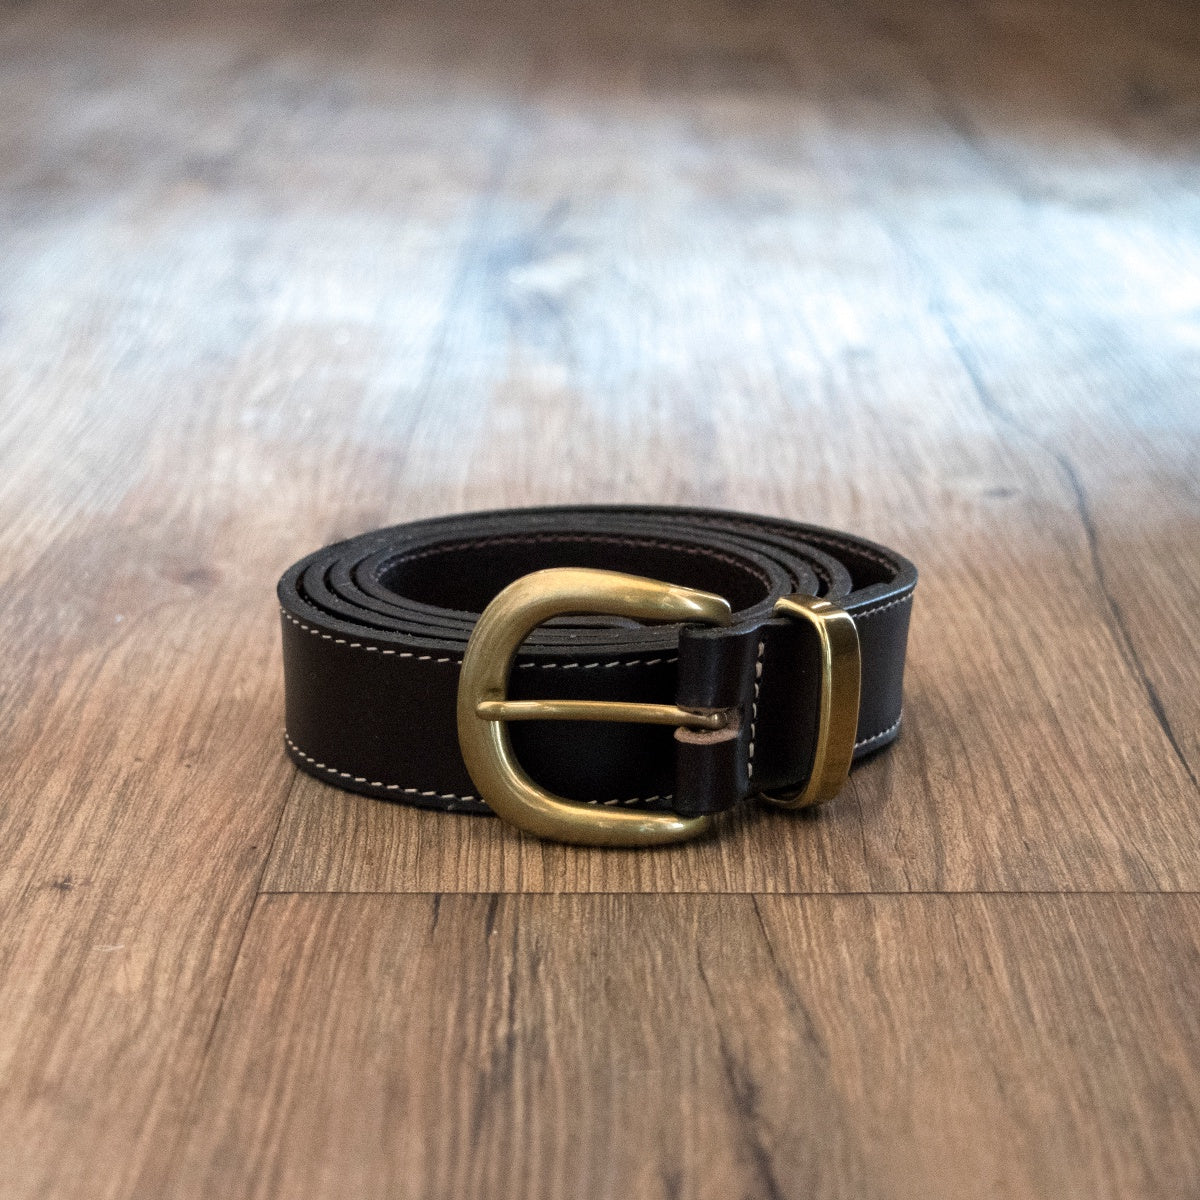 Australian made leather belt with brass buckle